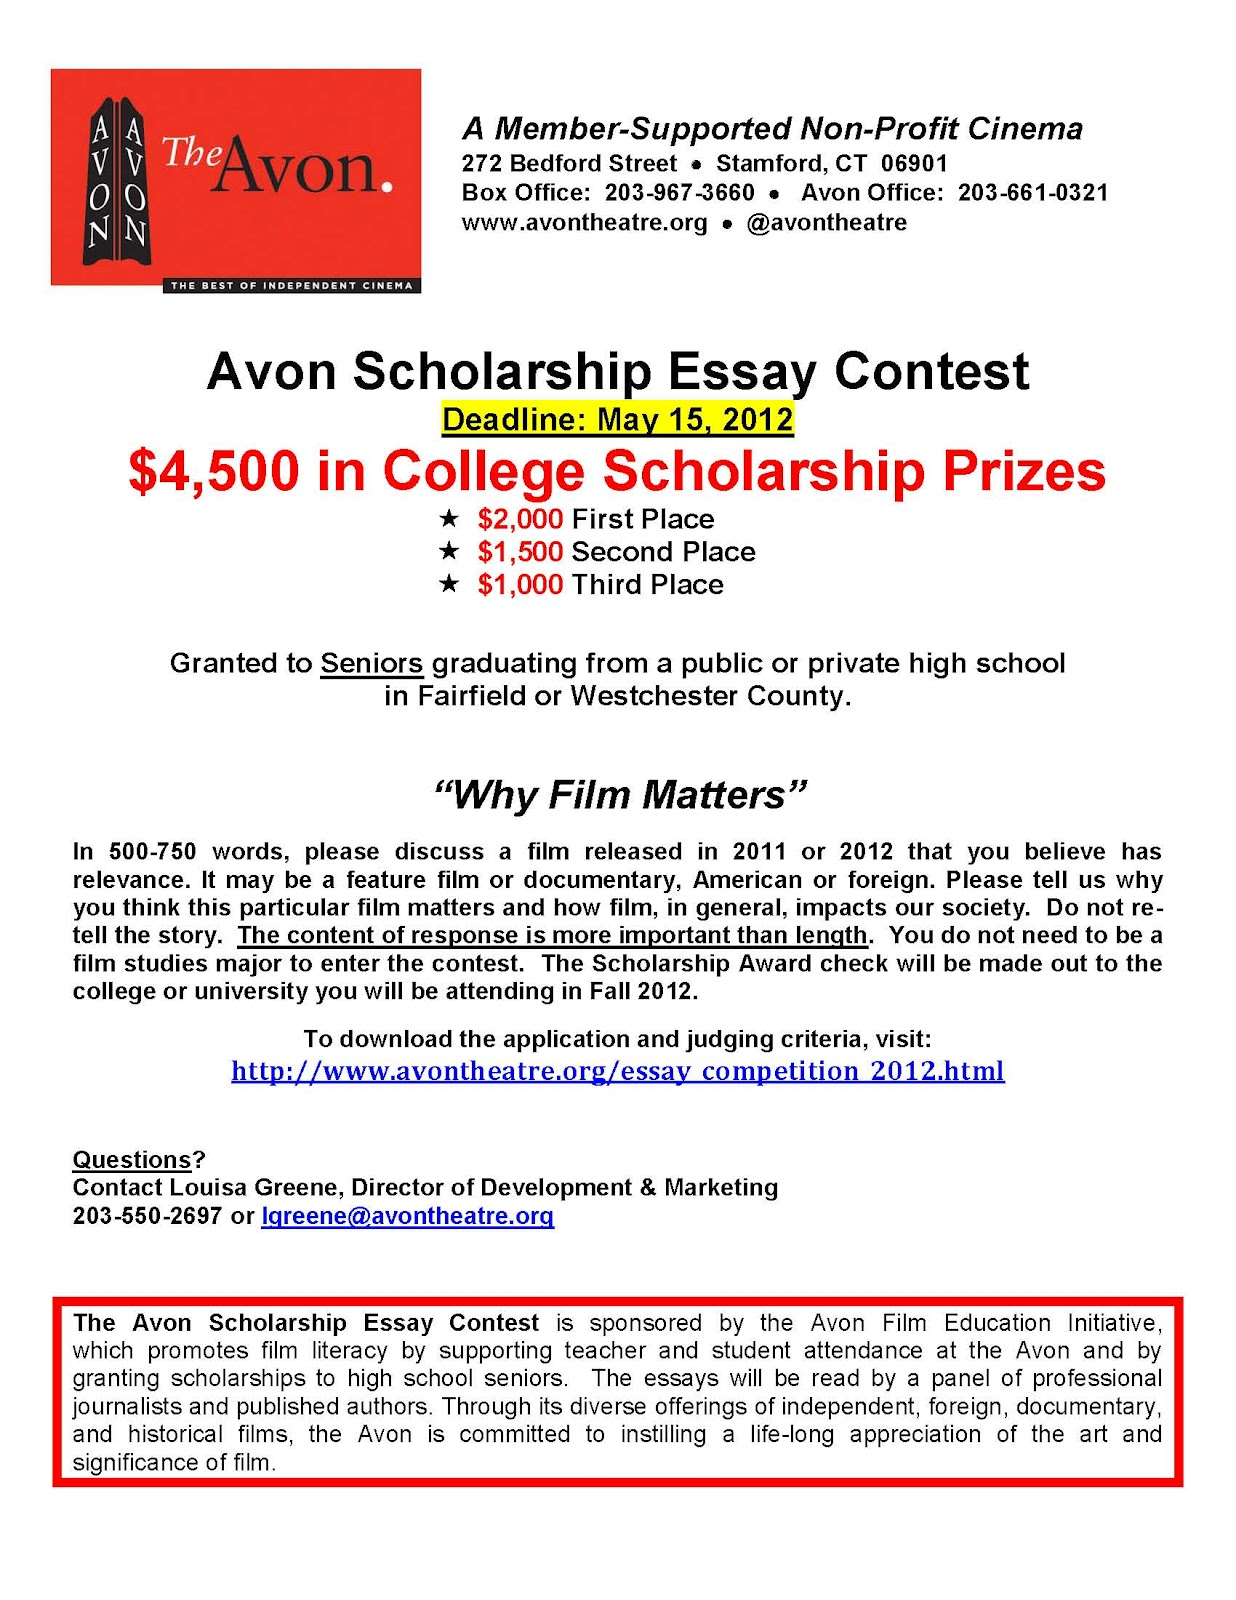 015 No Essay Scholarships Why Apply For Scholarship High School Juniors Avonscholarshipessaycontest2012 Contests Singular 2016 Full